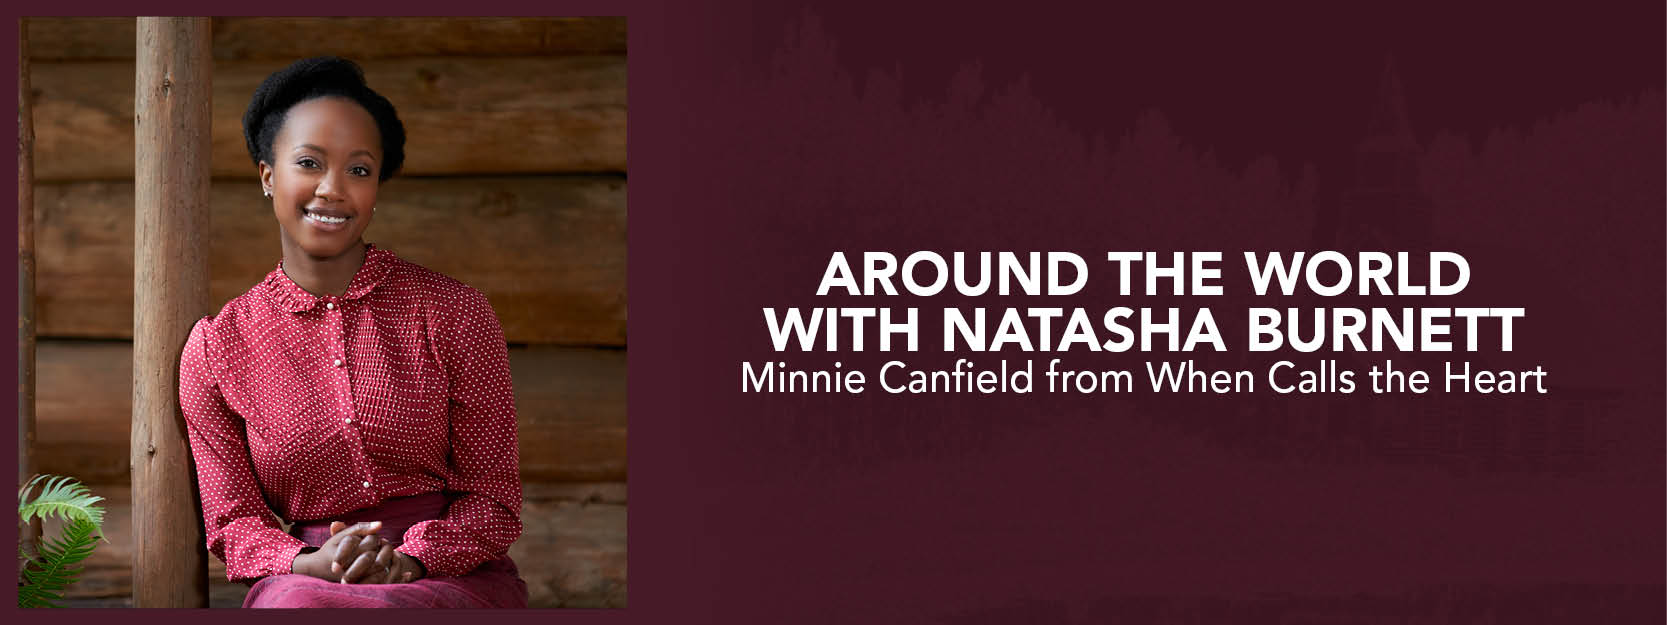 Around the World with Natasha Burnett